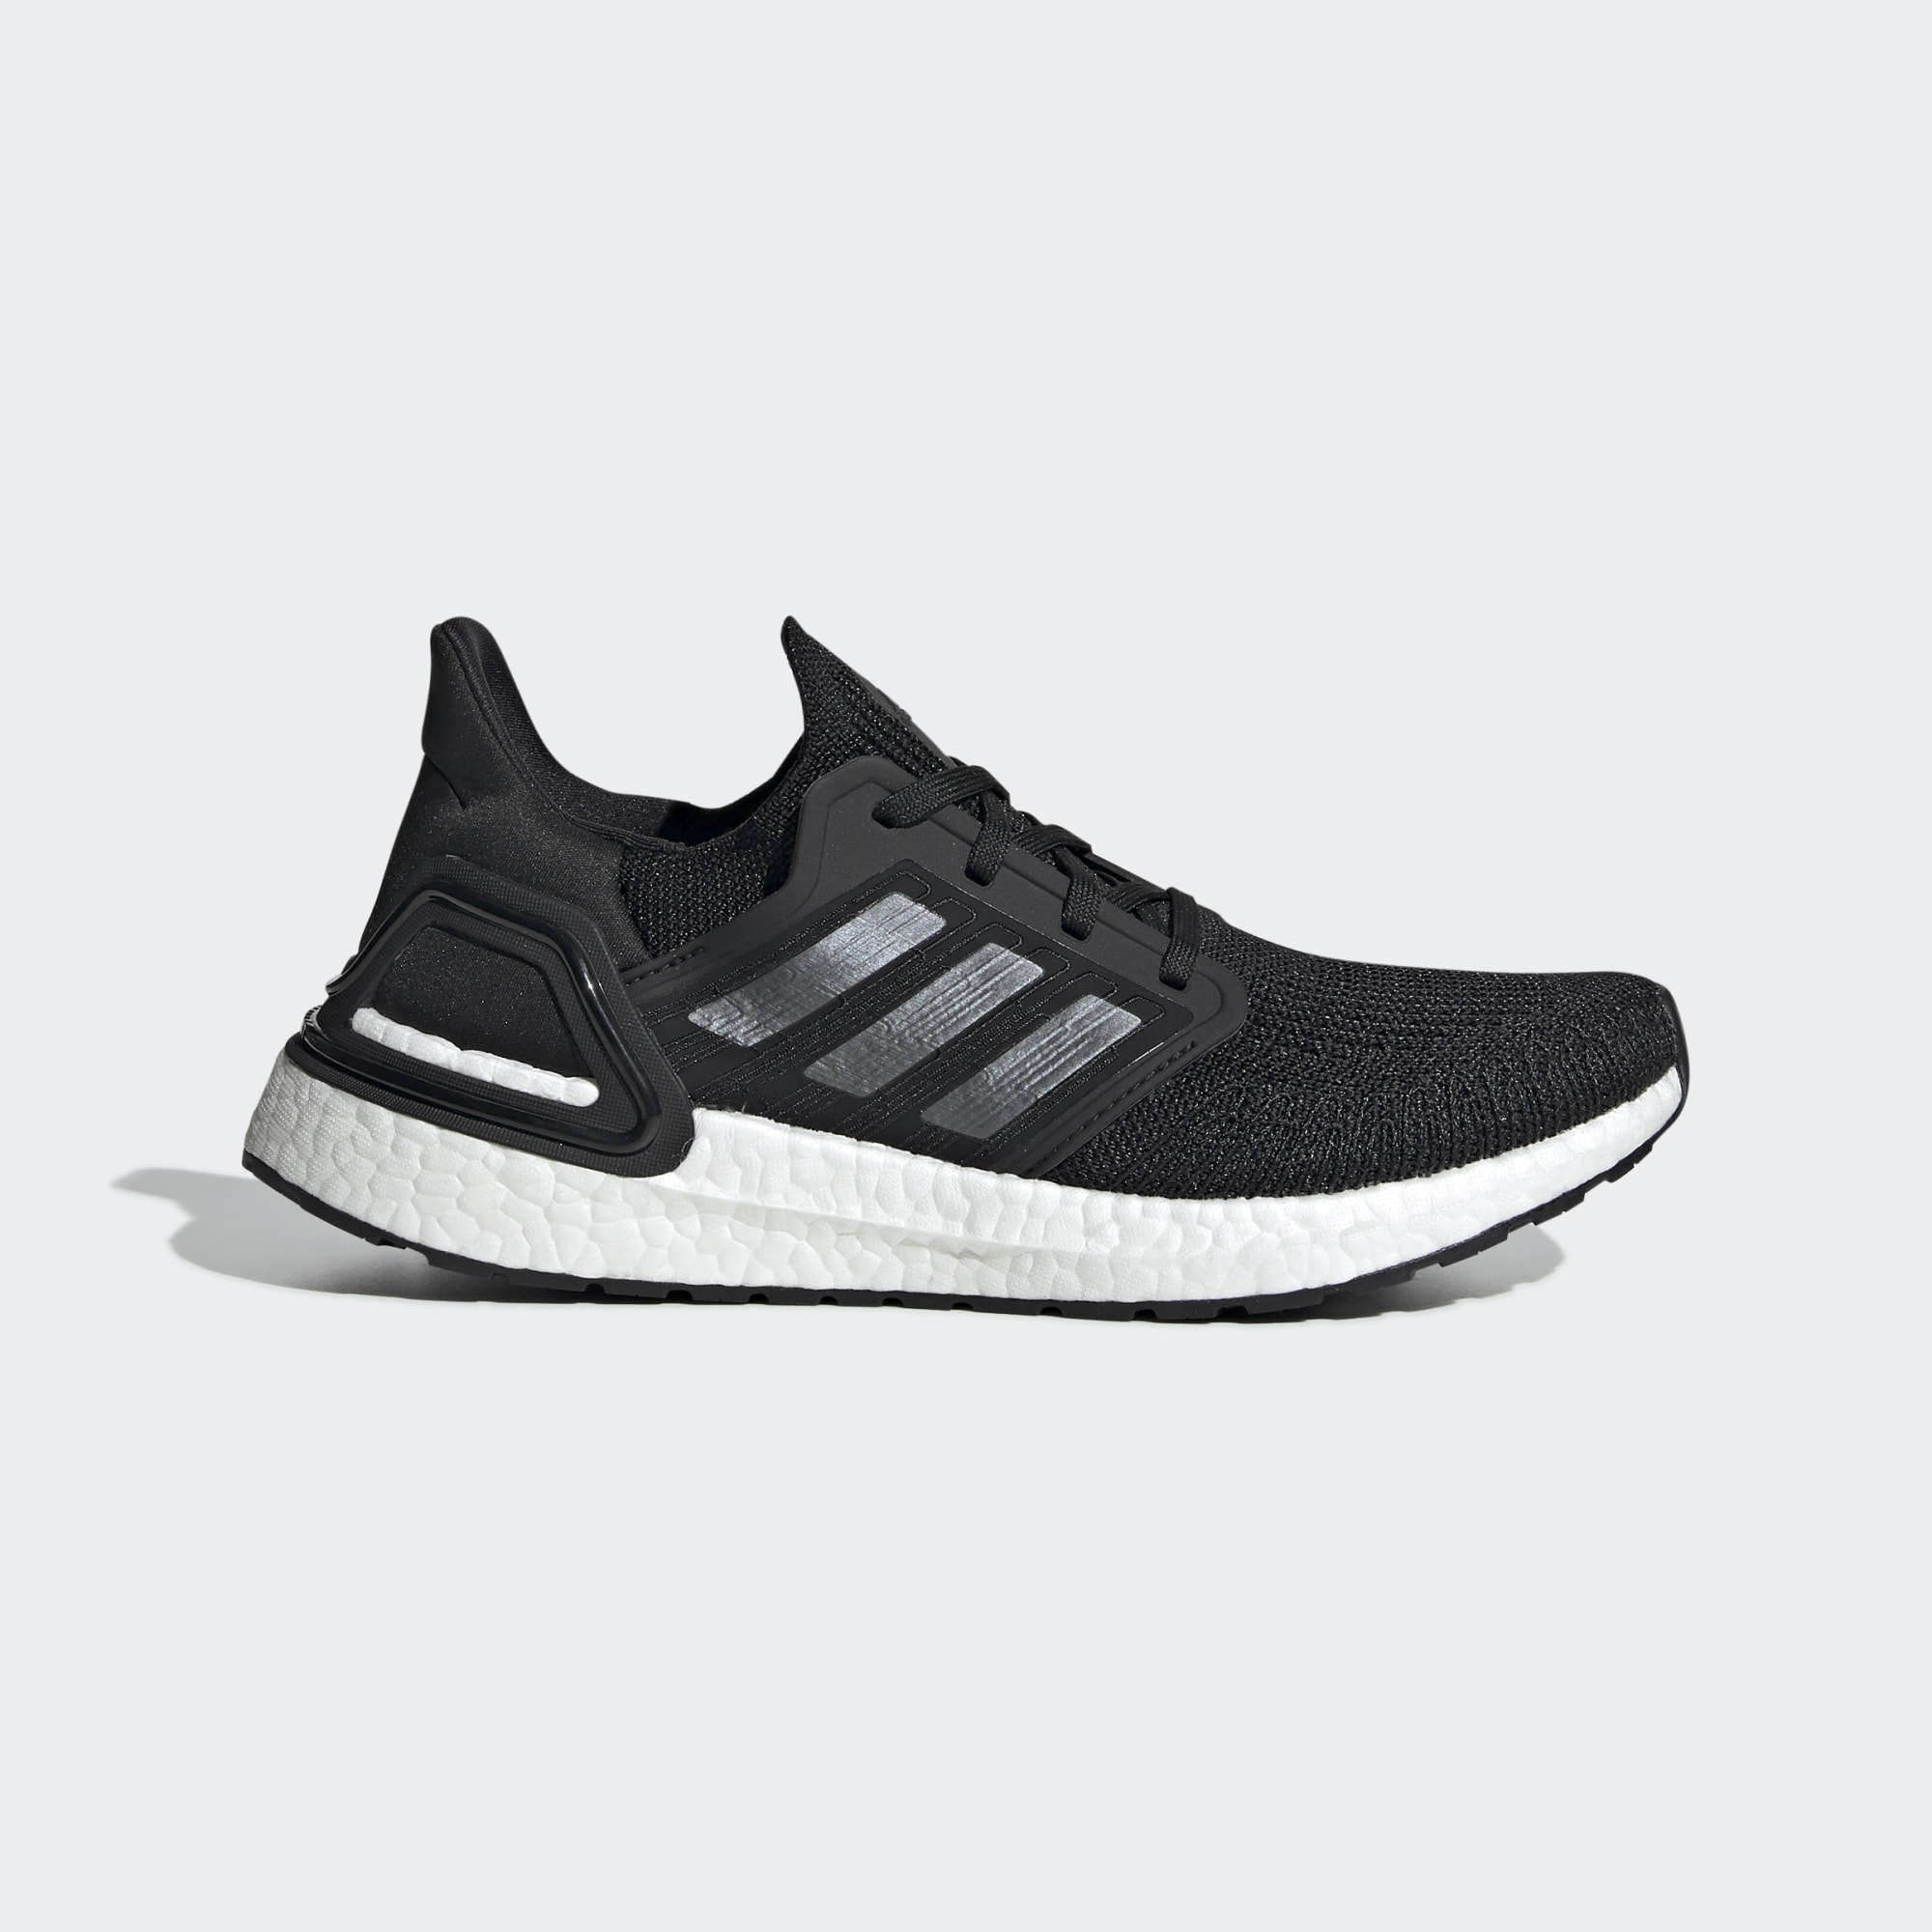 ultraboost adidas shoes; holiday gift guide for her